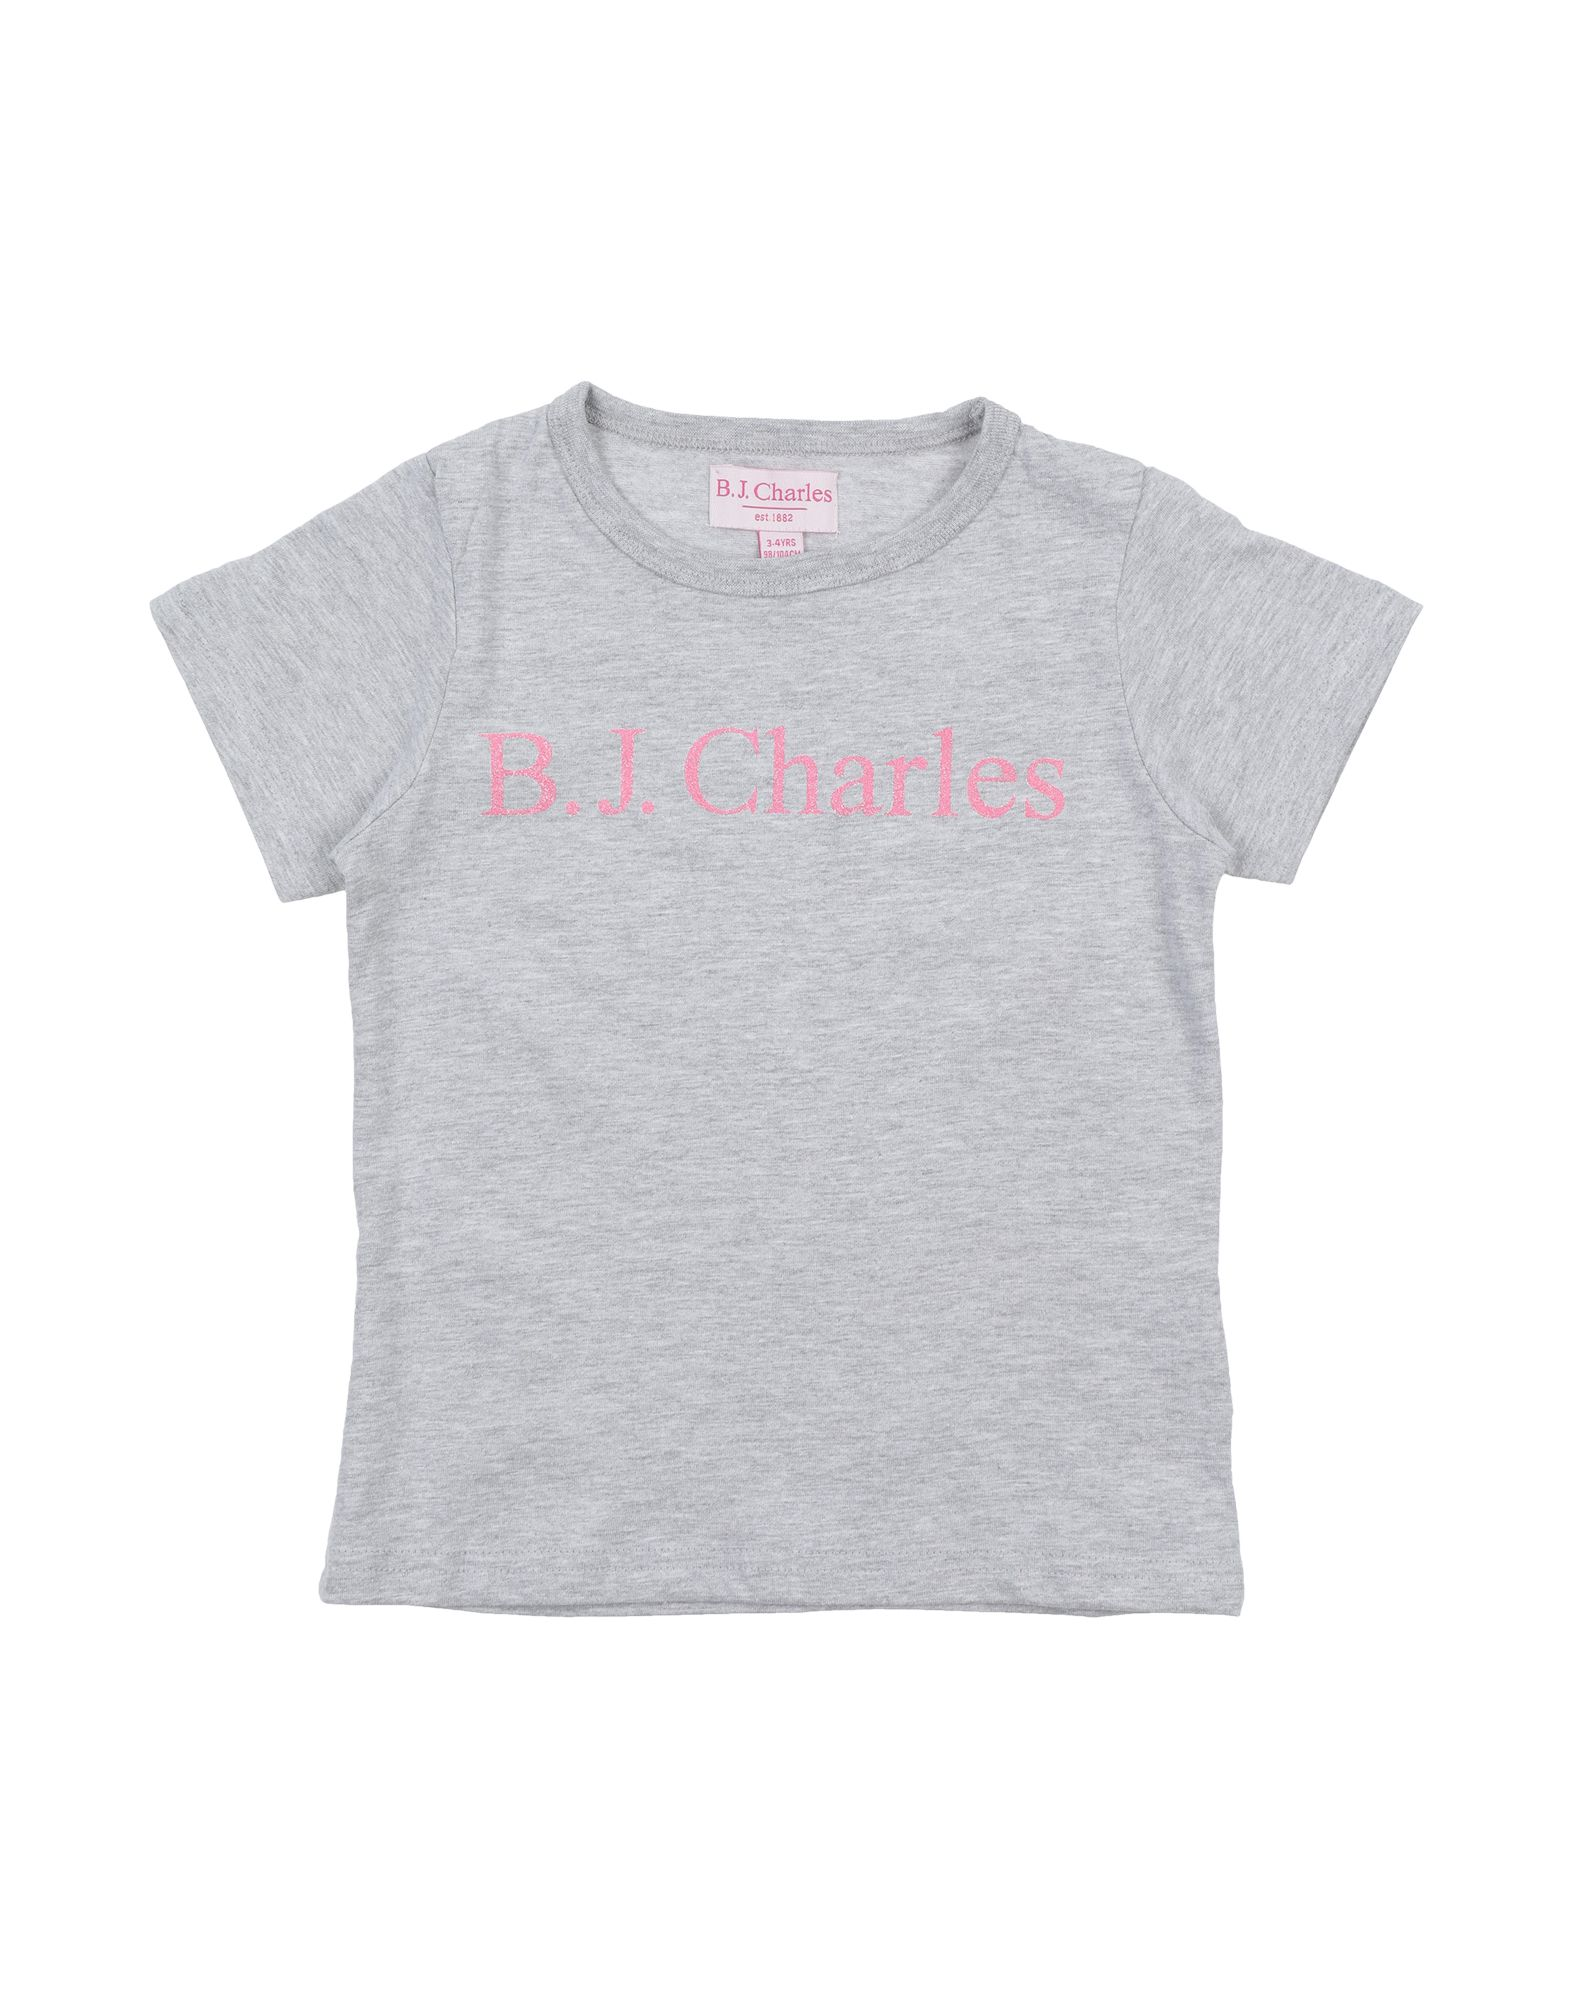 B.j.charles Kids' T-shirts In Grey